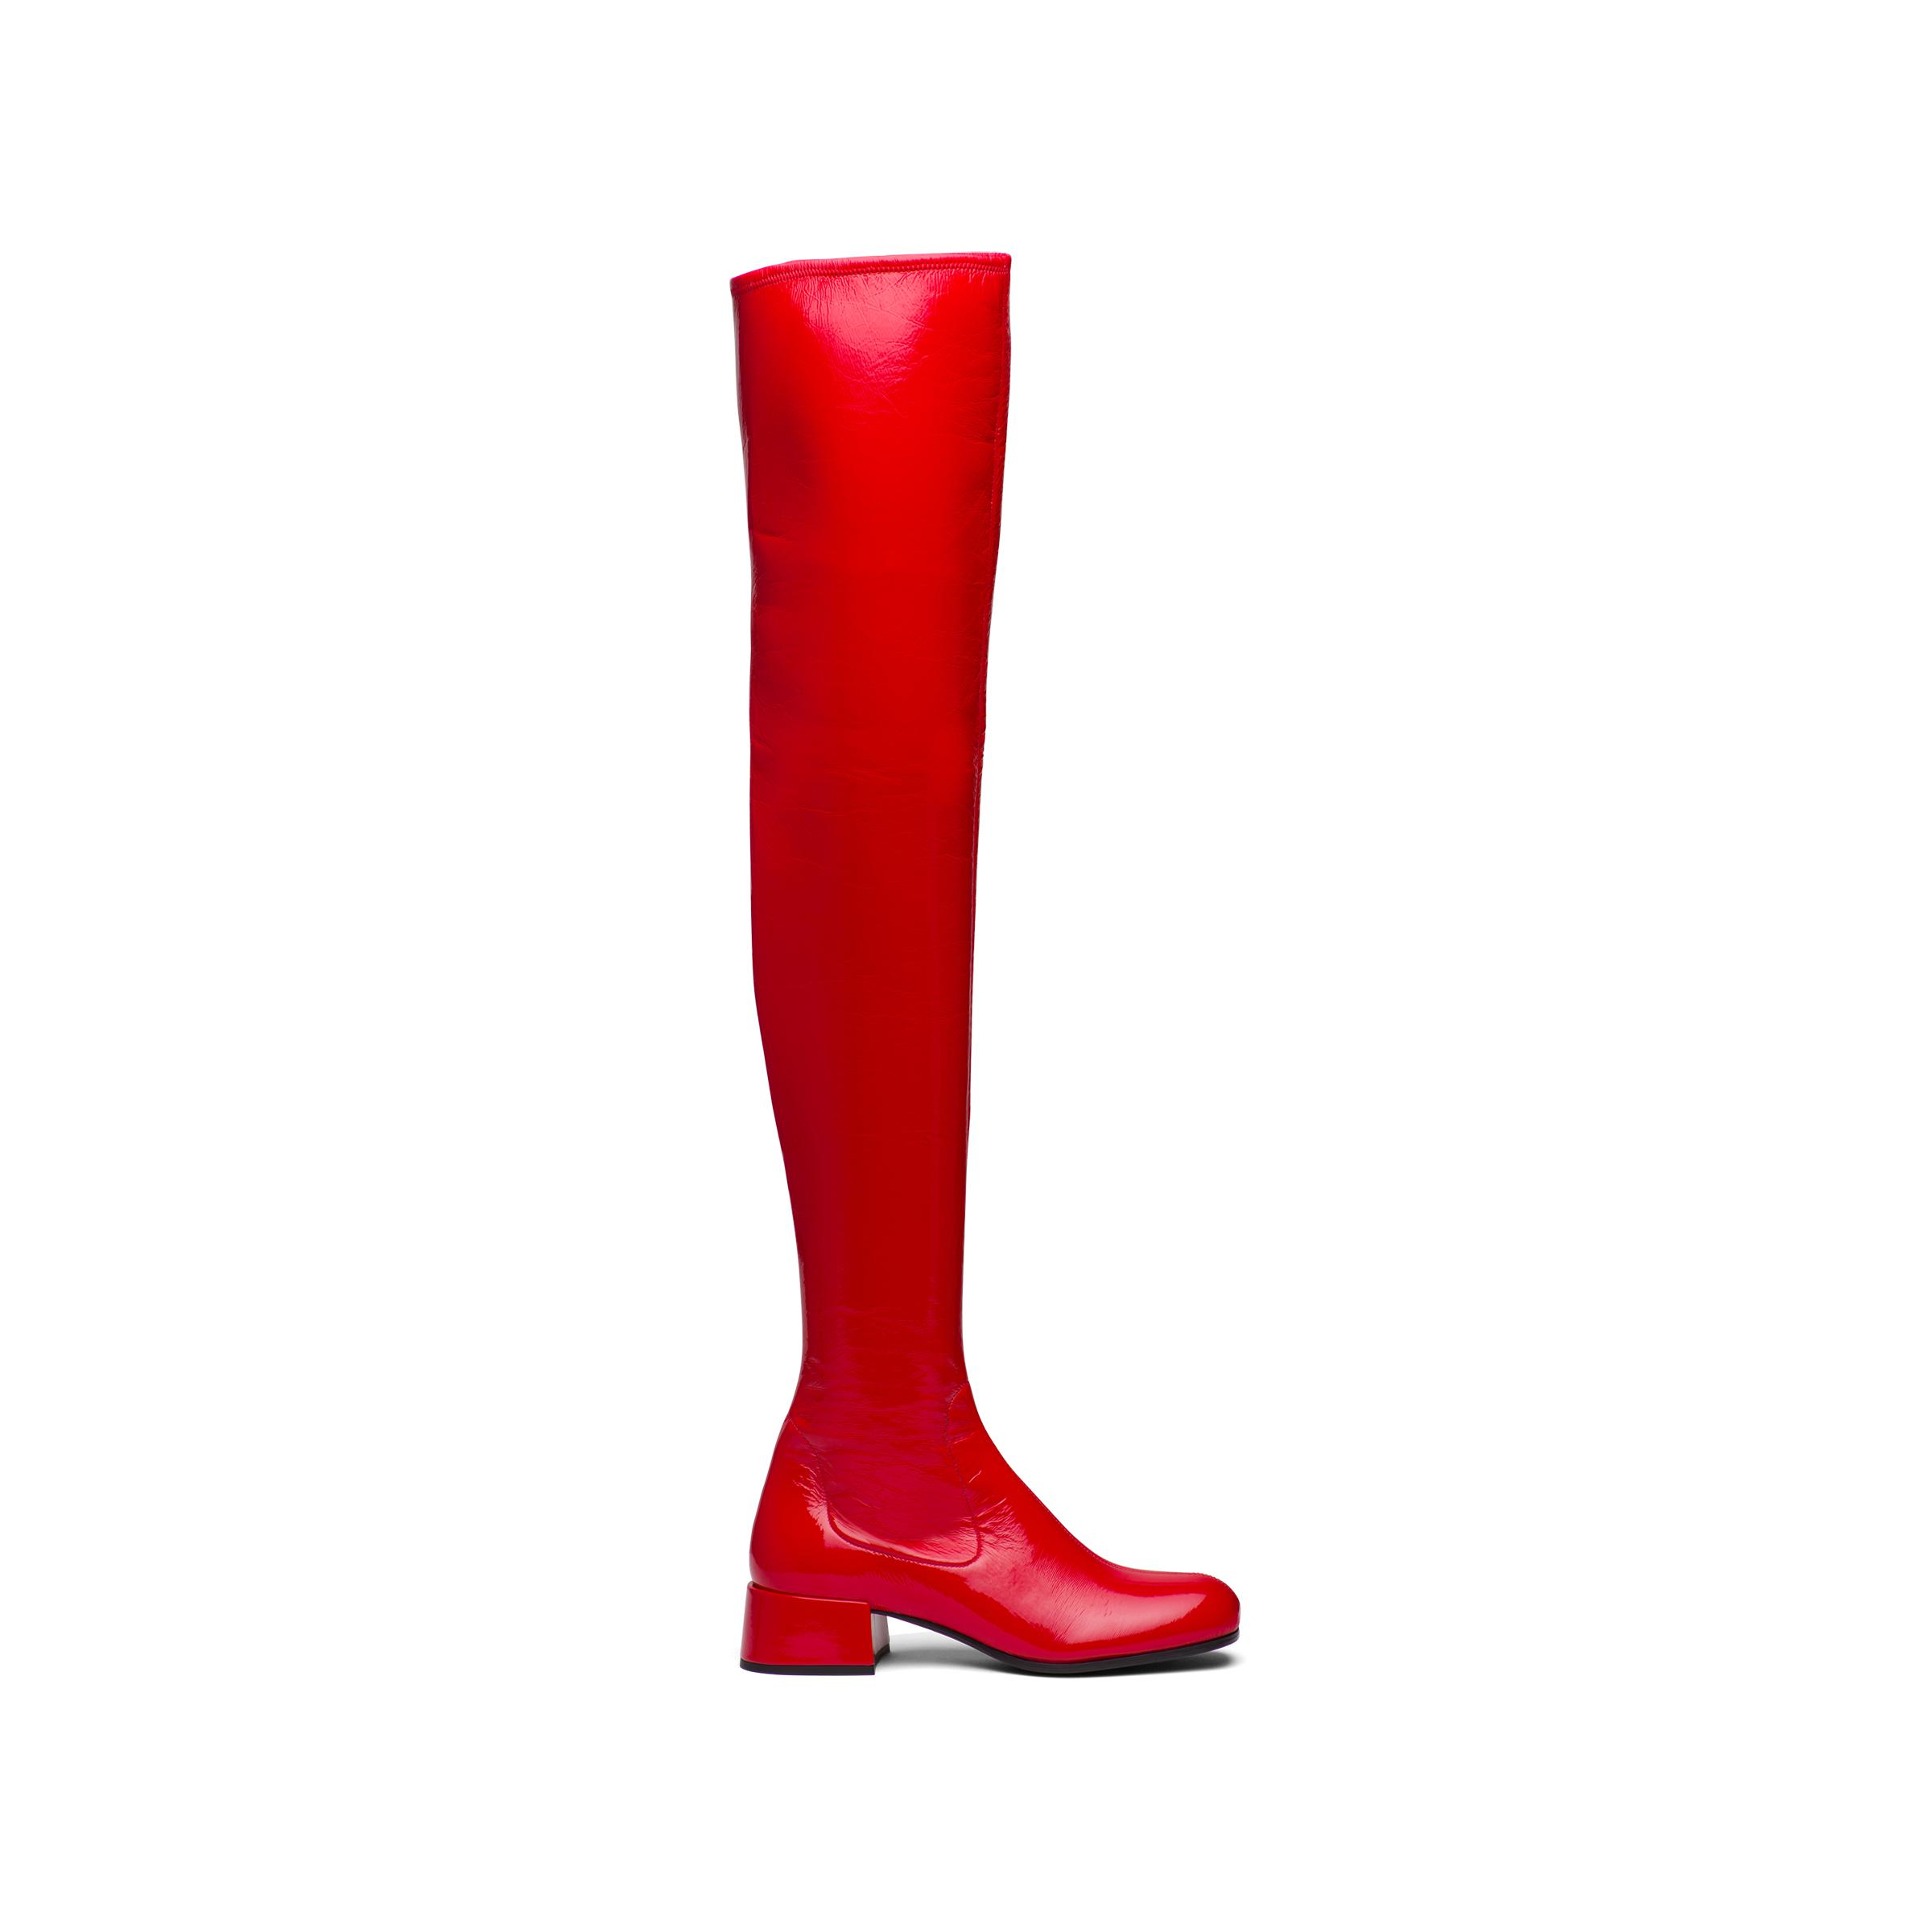 Technical Patent Leather Boots Women Red 2